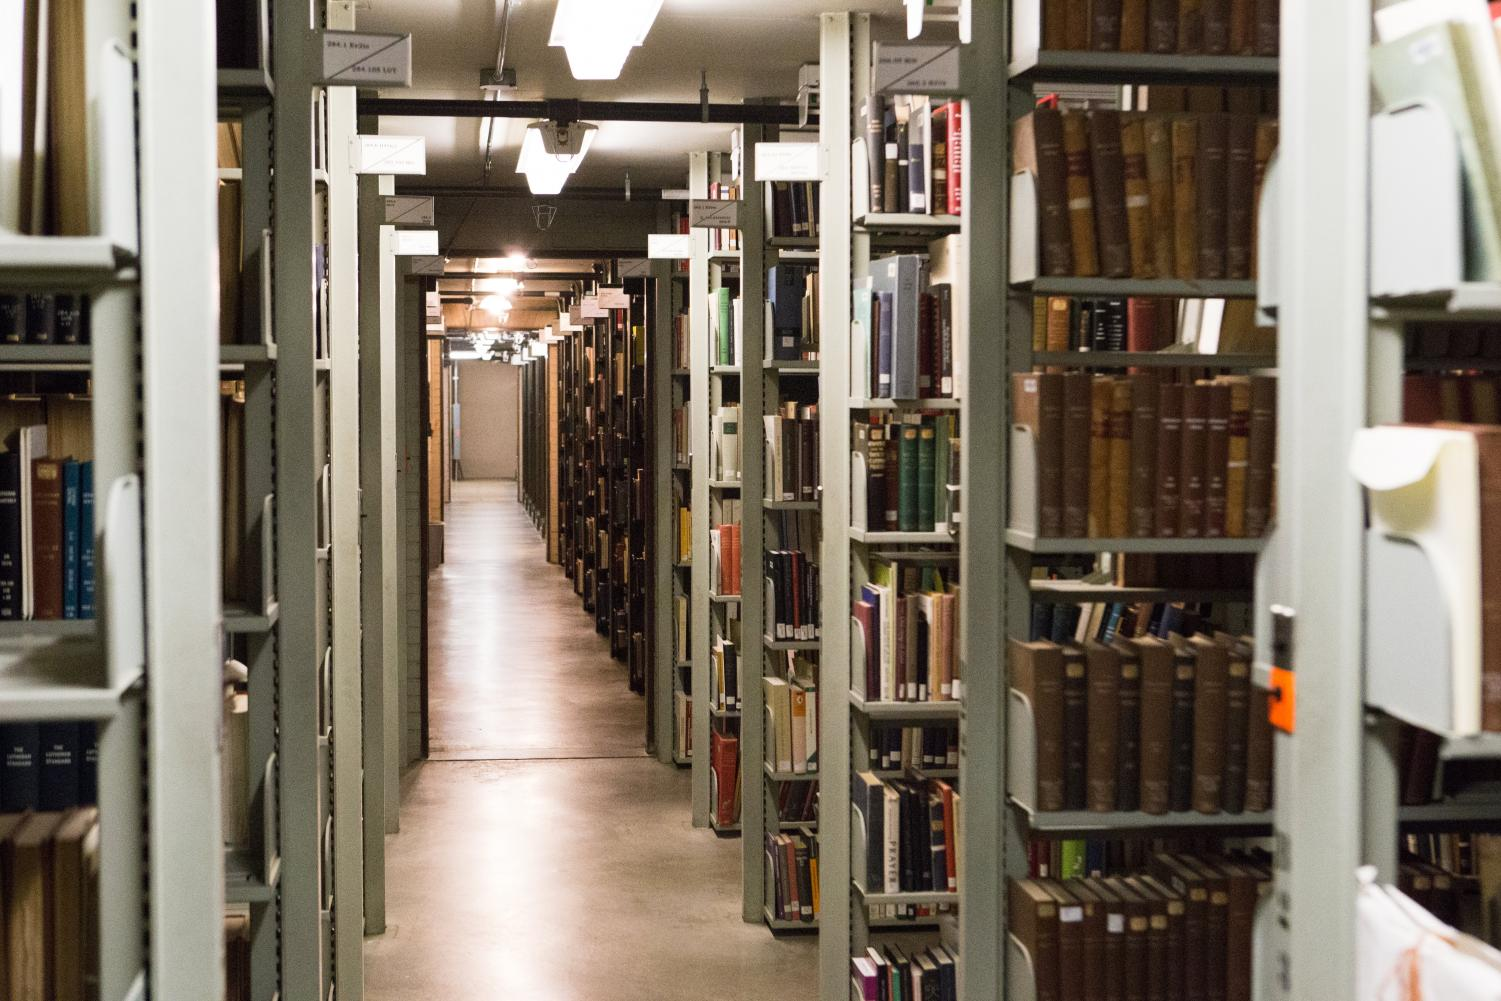 The Main Library's main stacks has ten levels of books and resources available to students.